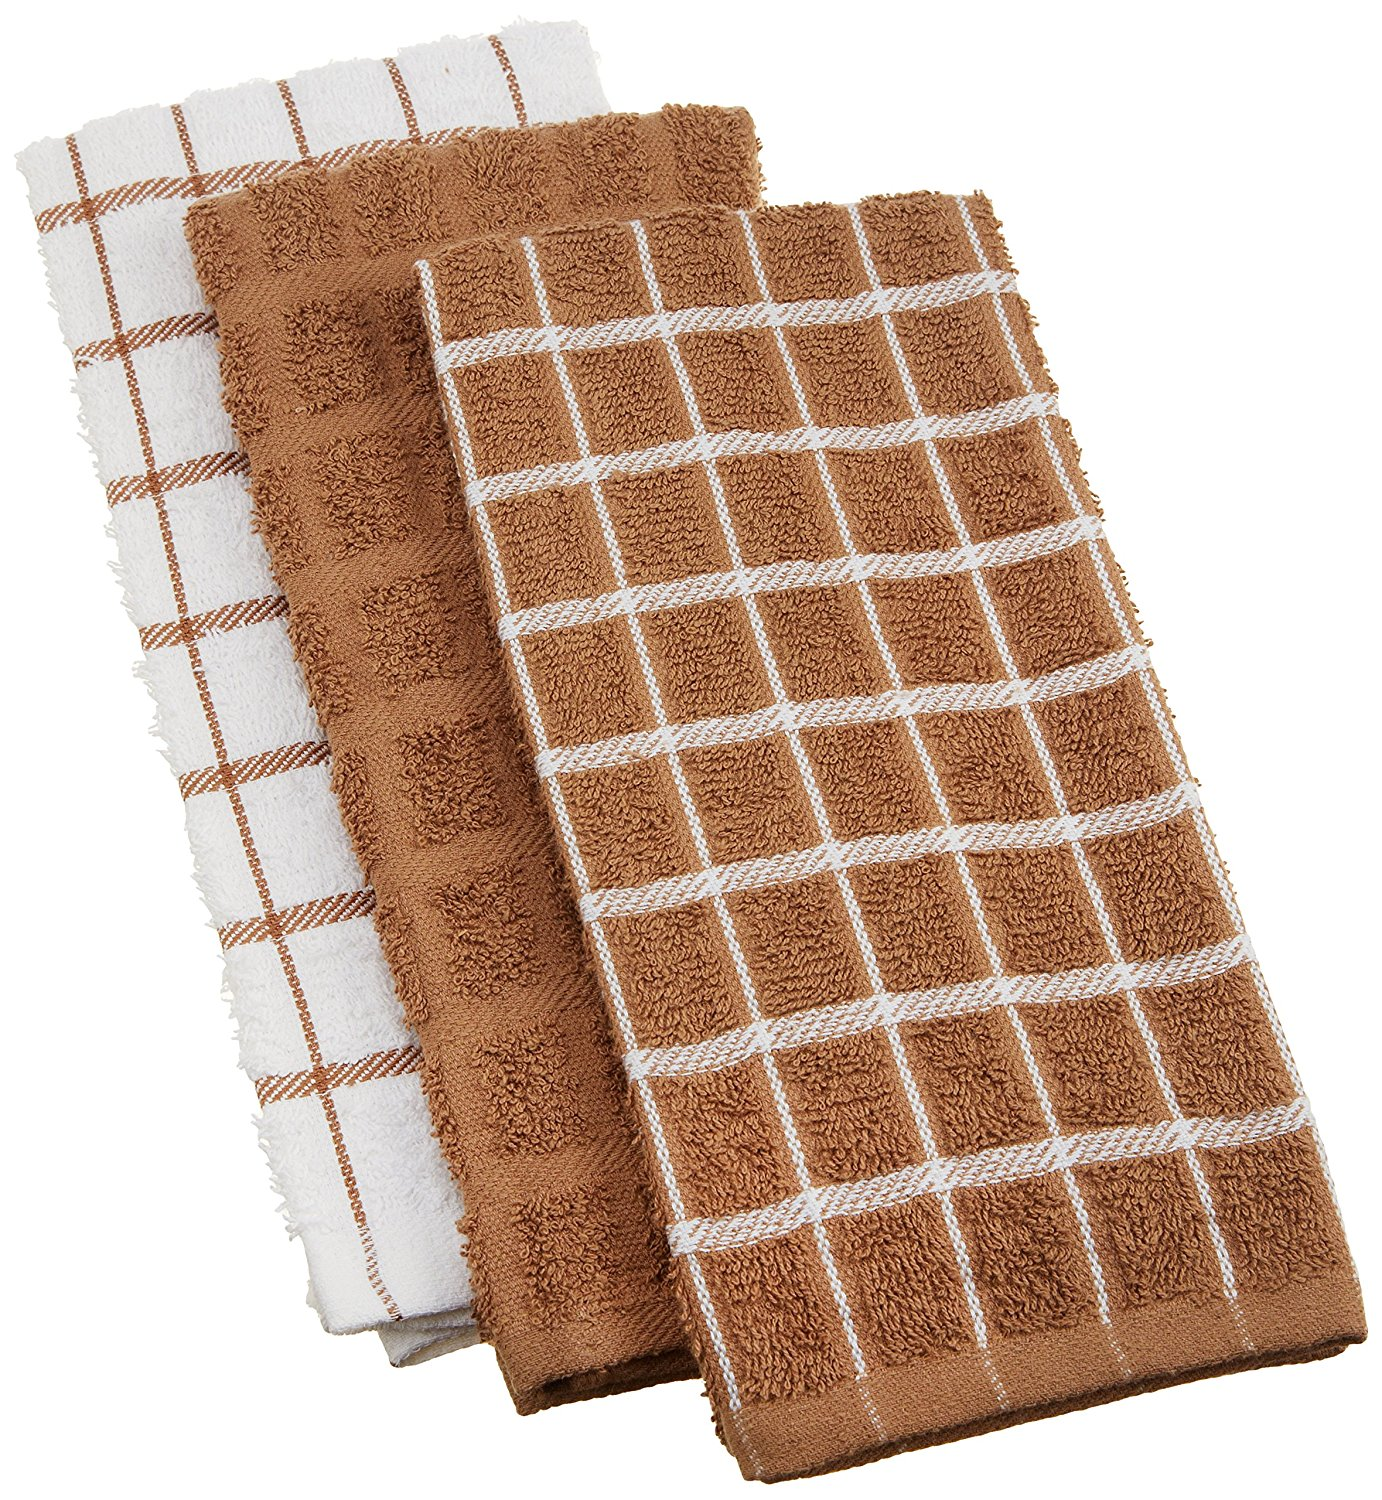 """100% Cotton Terry Kitchen Dish Towels, Highly Absorbent, 25"""" x 15"""", 3-Pack, Mocha Brown, VALUE PACK. The Ritz set of three (3), 100-percent terry looped.., By Ritz"""